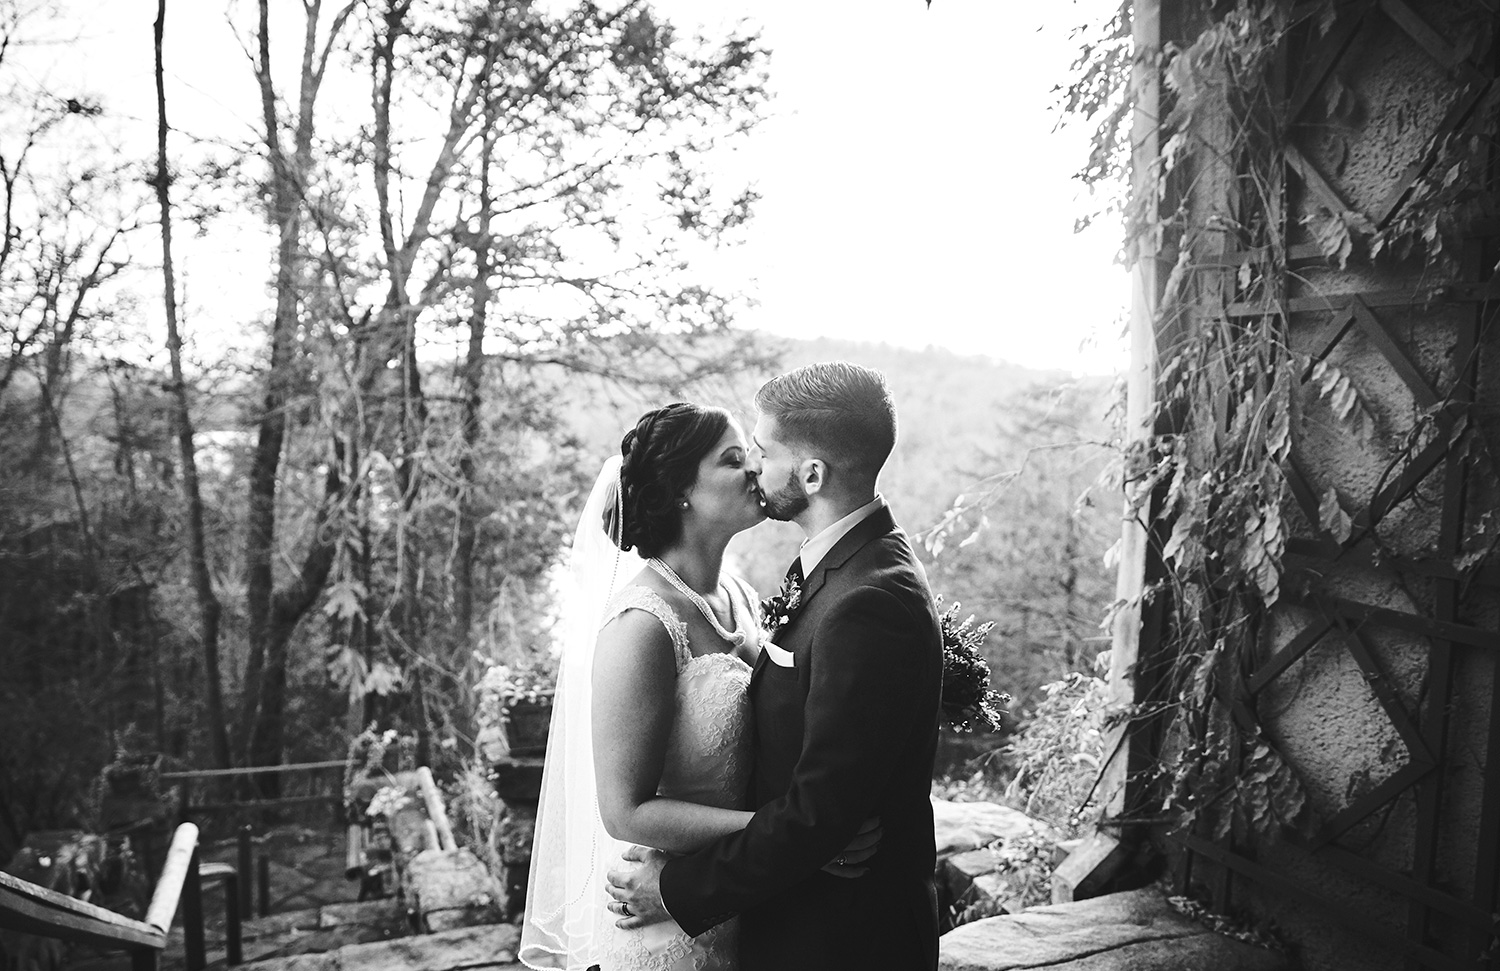 161119_ArrowParkLake&LodgeWedding_By_BriJohnsonWeddings_0131.jpg